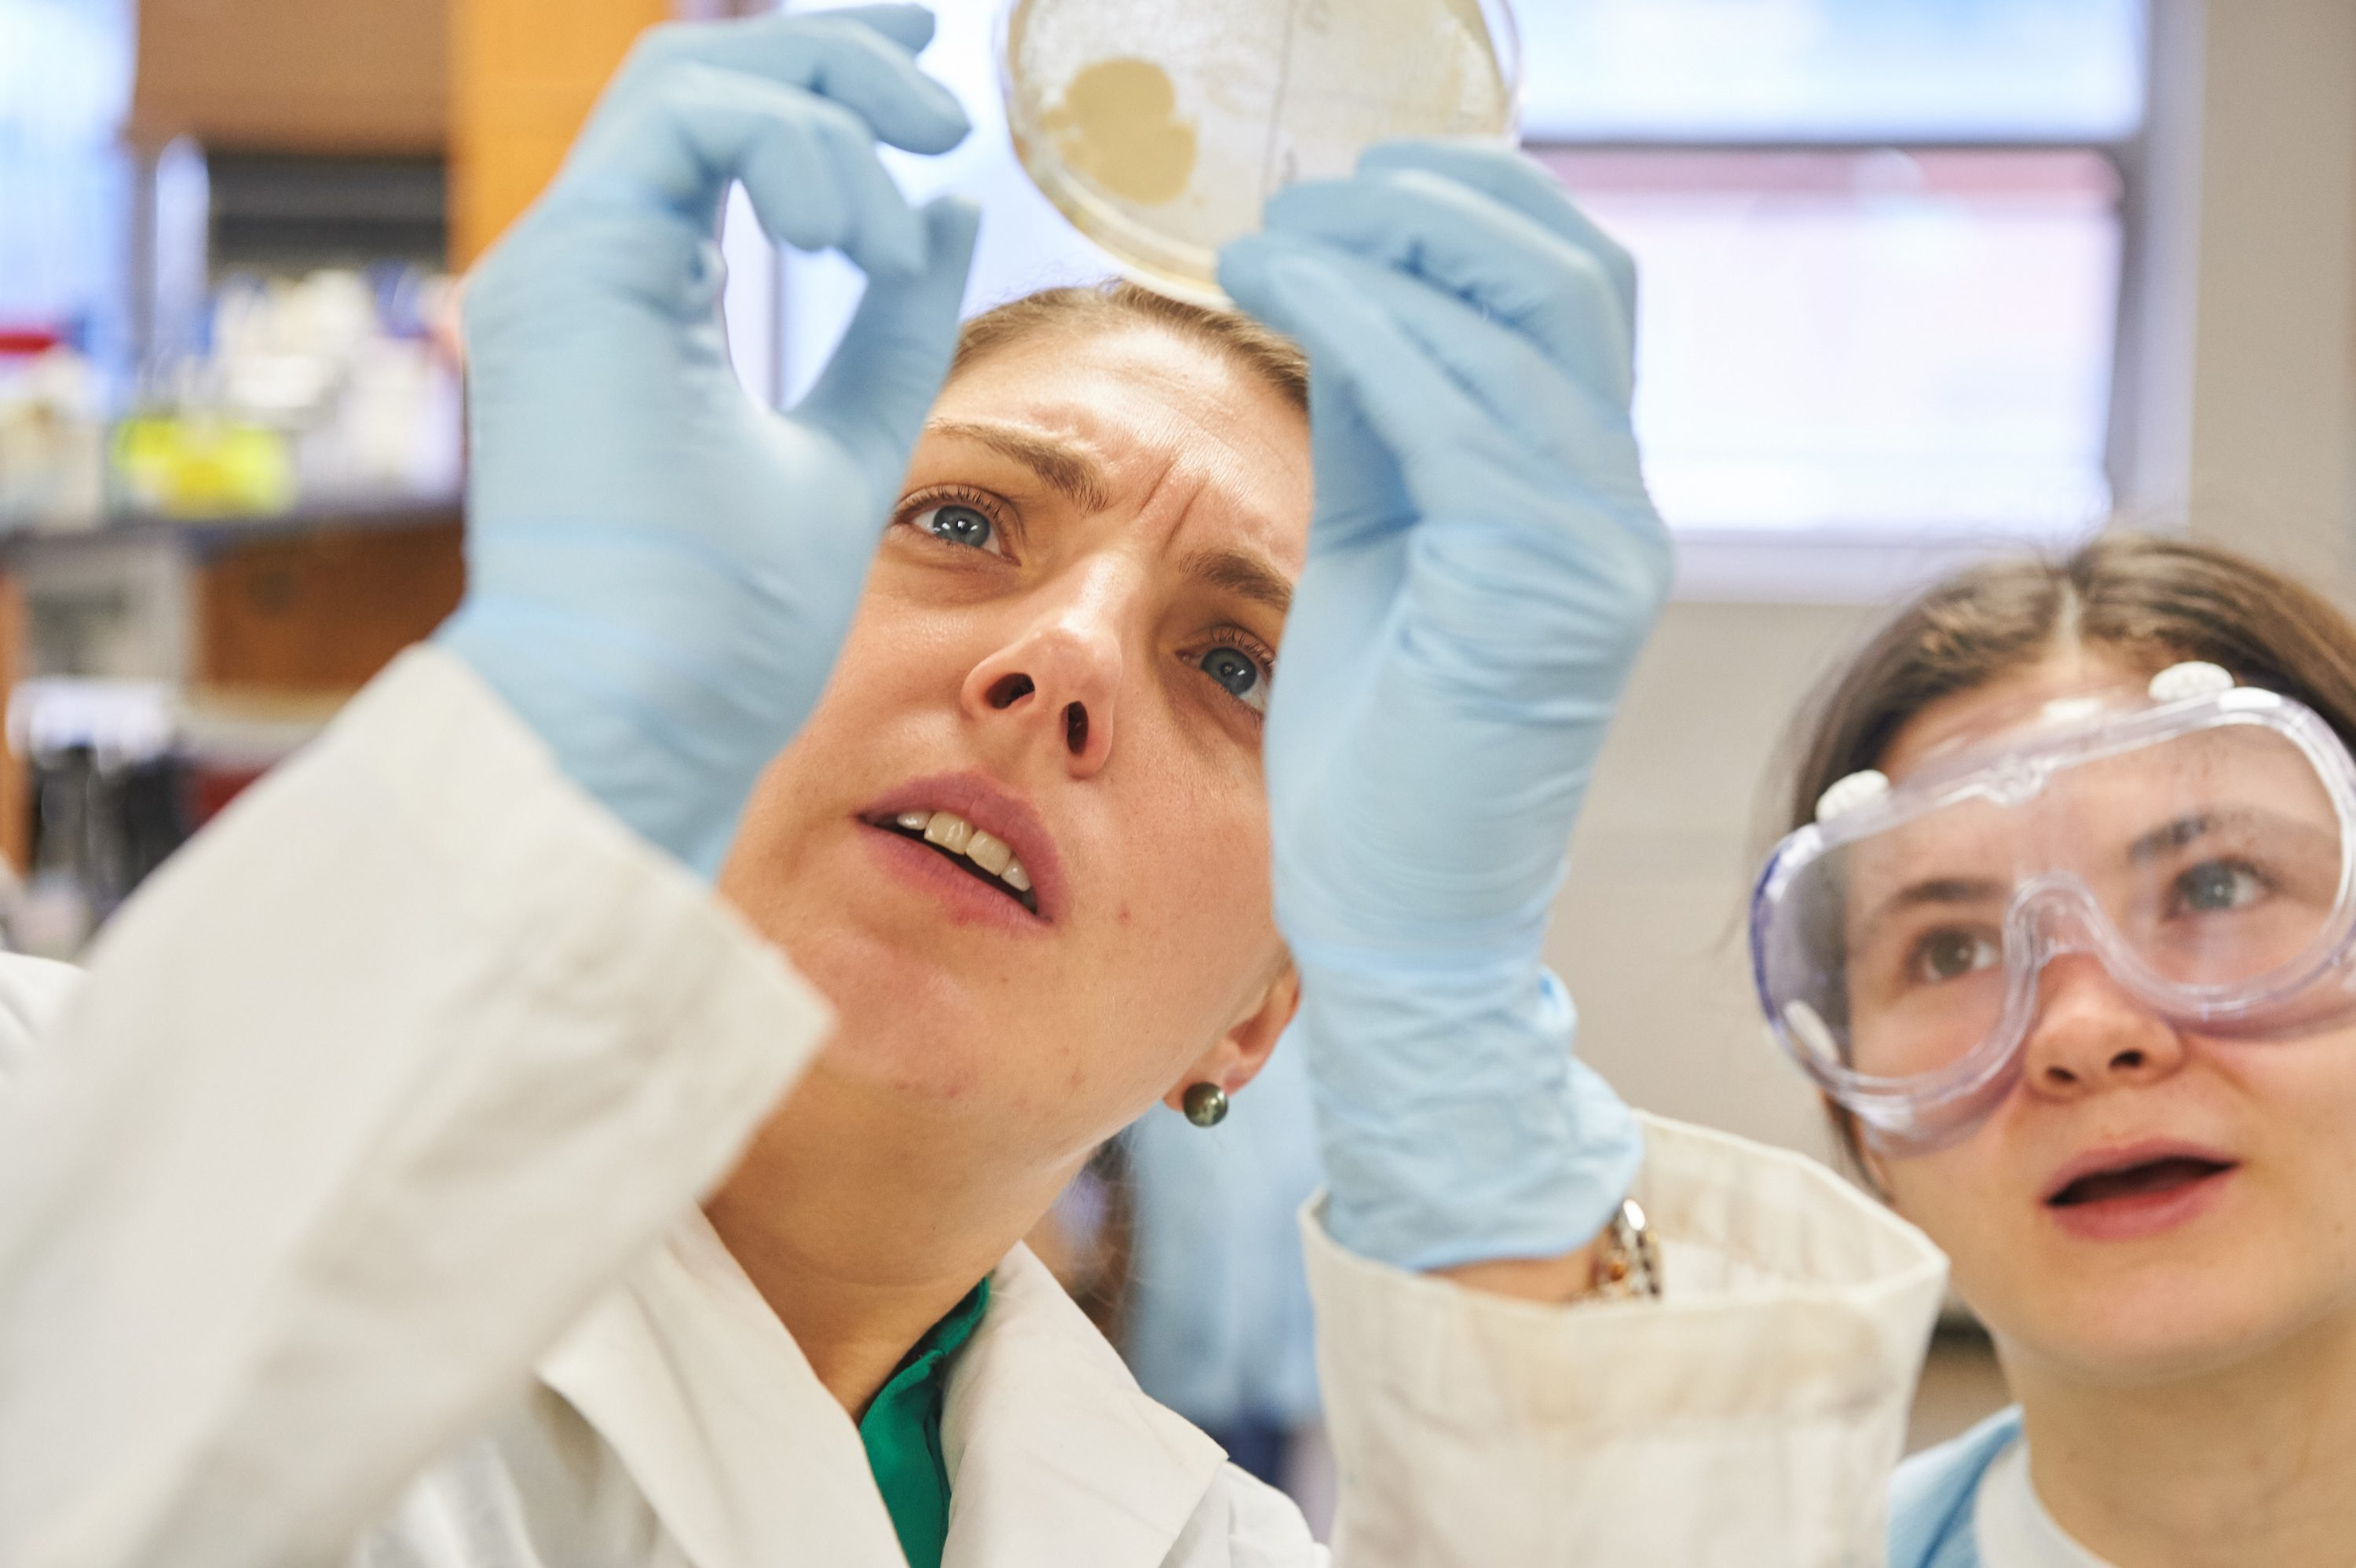 Nichole Broderick, assistant professor of molecular and cell biology, left, and Katherine Tiernan '19 (ENG) look at a bacteria culture plate during a 'Microbe Hunting' class, part of a global collaboration between students and microbiologists called the Small World Initiative. (Peter Morenus/UConn Photo)